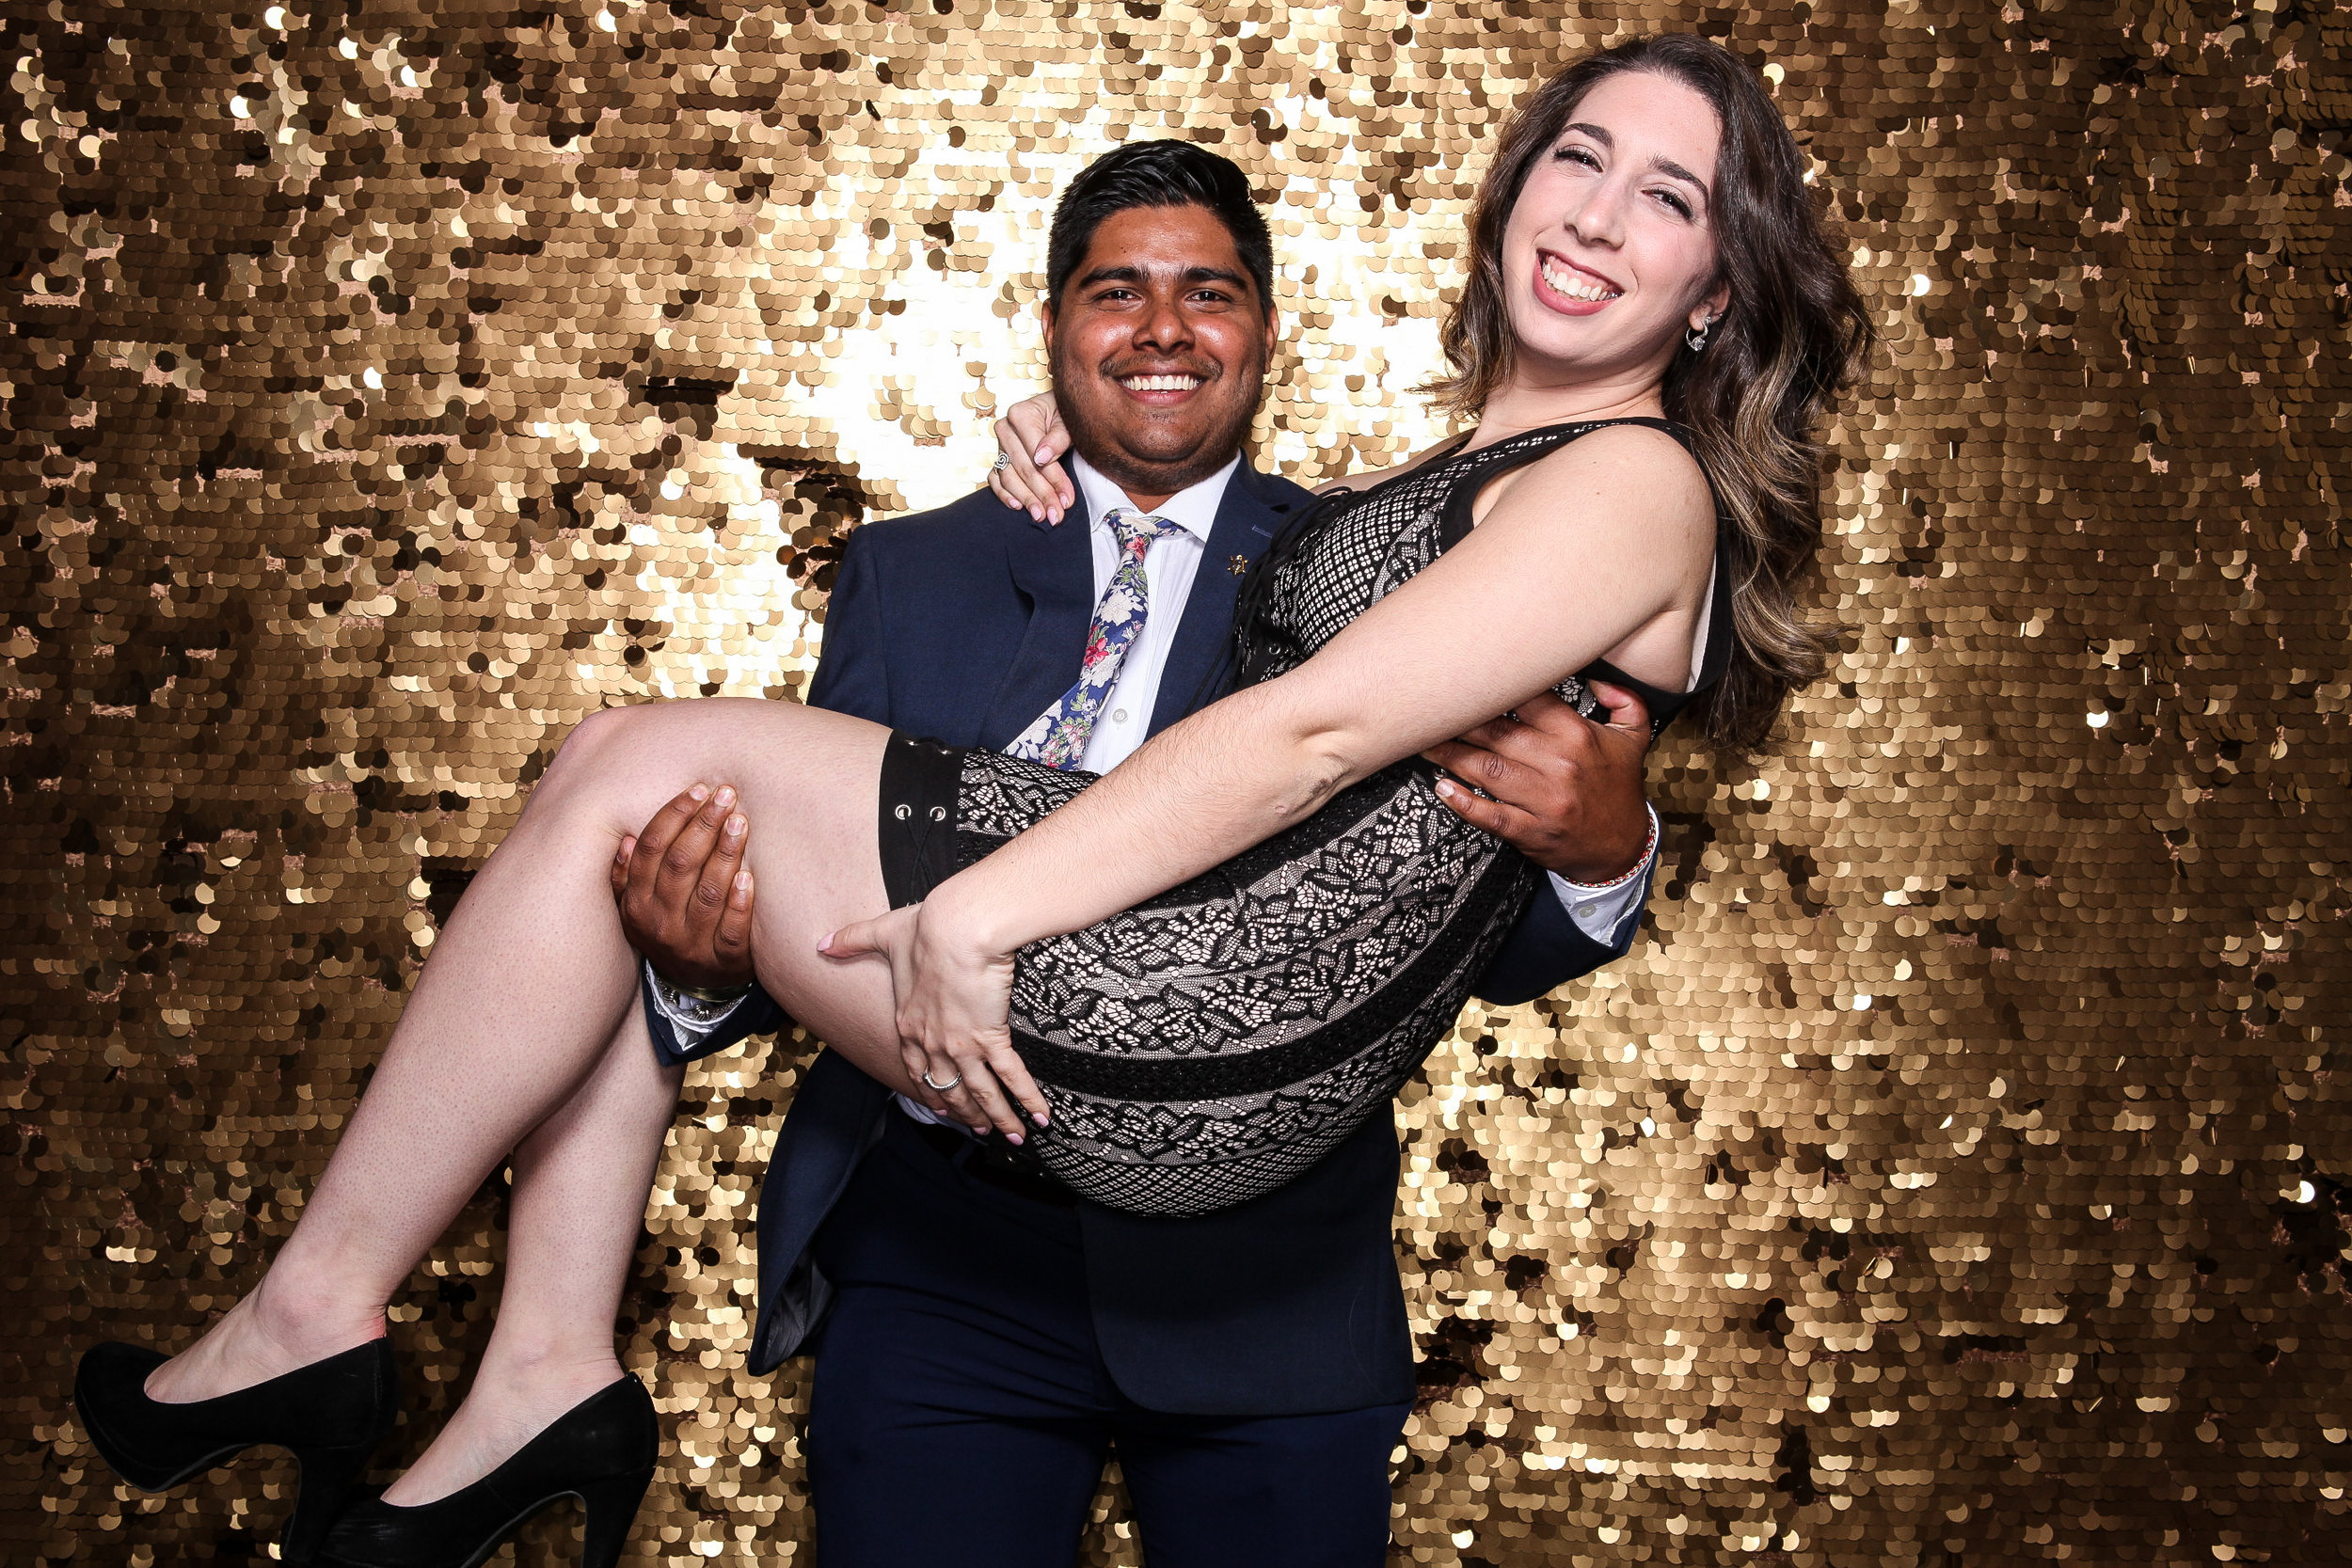 20190503_Adelphi_Senior_Formal-133.jpg